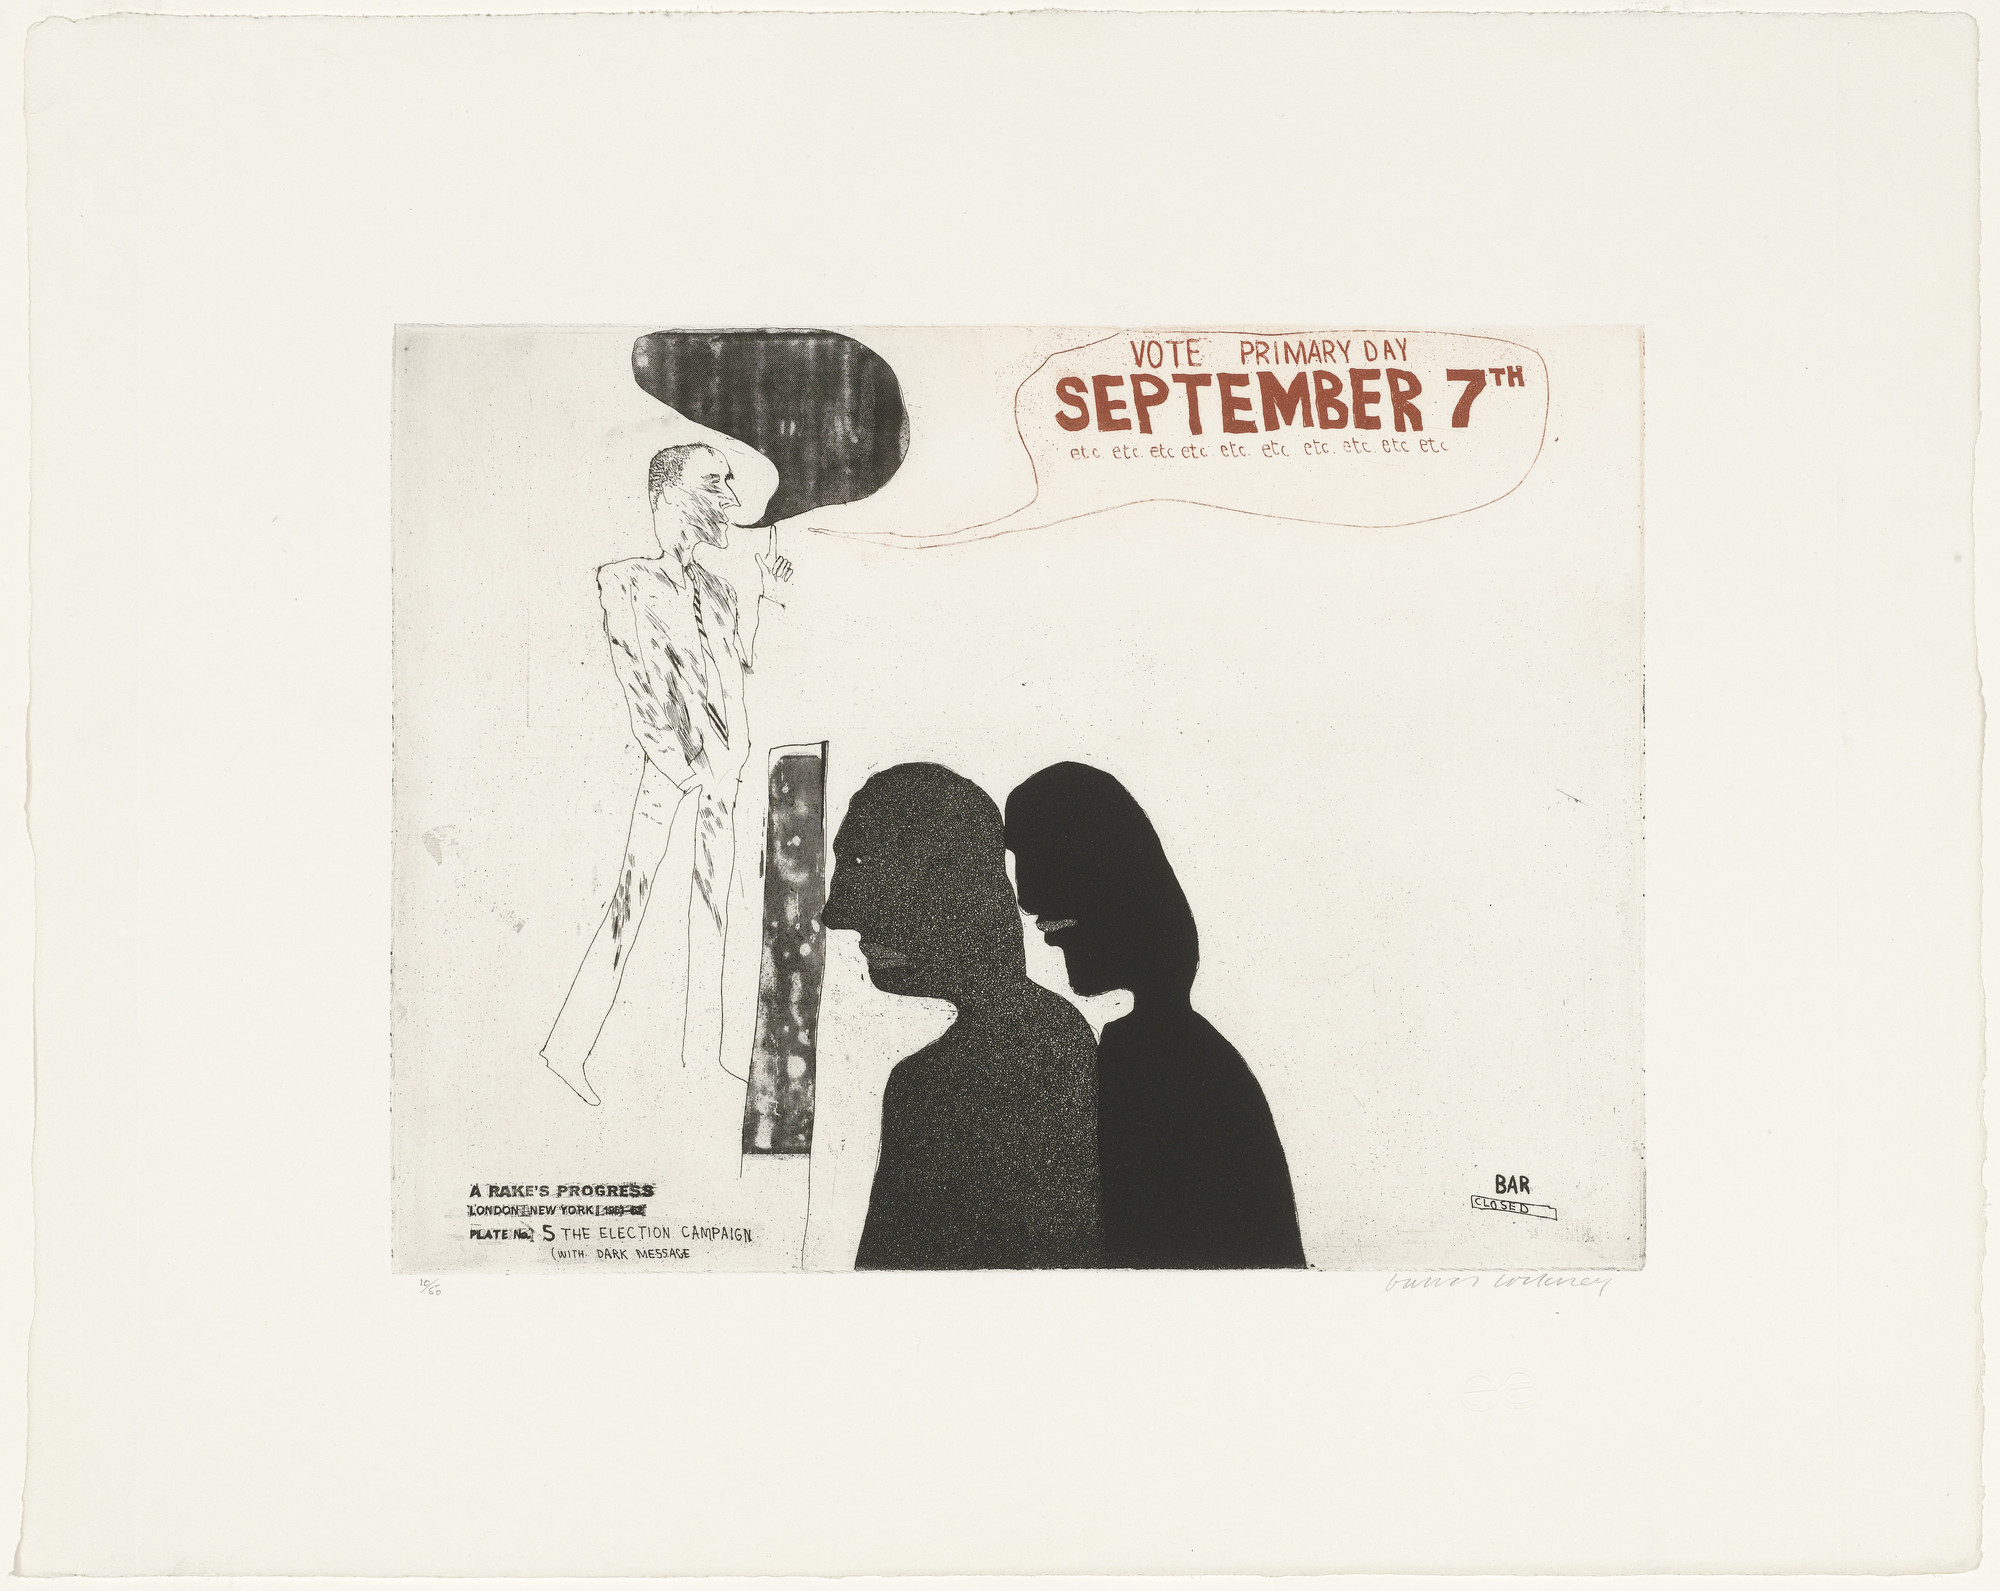 David Hockney. The Election Campaign (with Dark Message) (plate 5) from A Rake's Progress. 1961–62, published 1963